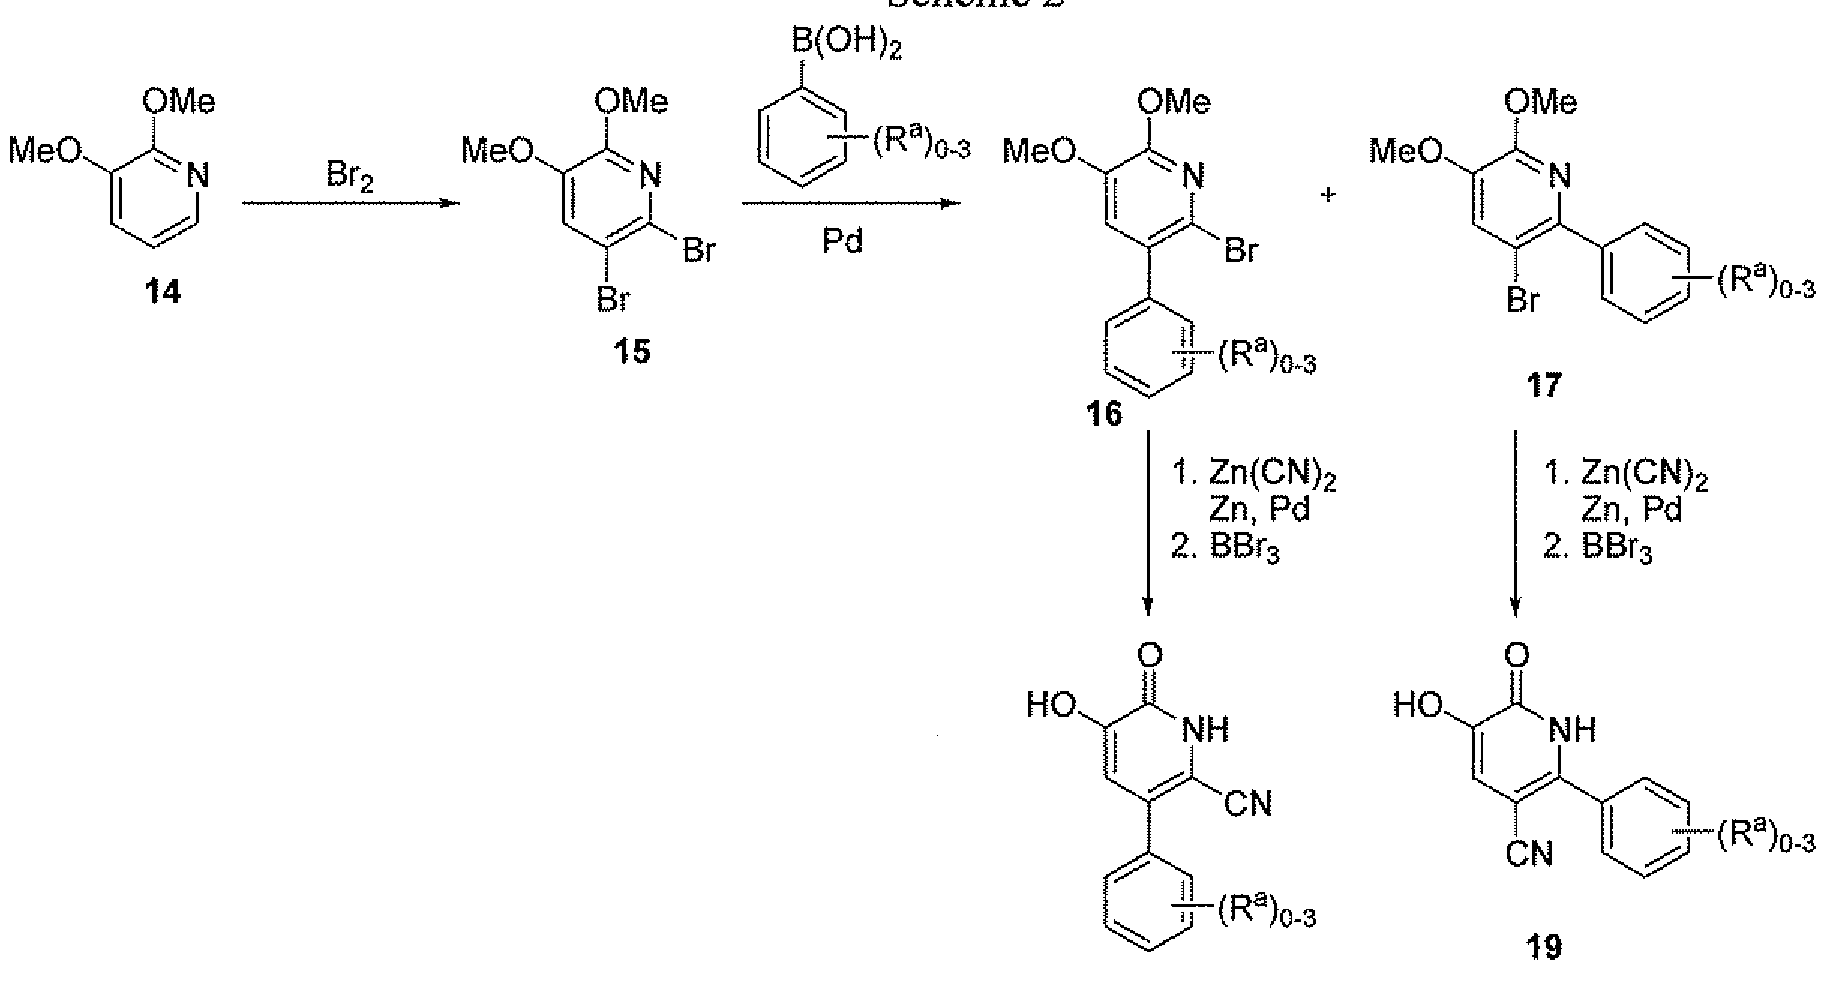 Wo2011109261a1 Inhibitors Of Catechol O Methyl Transferase And Oli Rotary 2t R30 Figure Imgf000032 0001